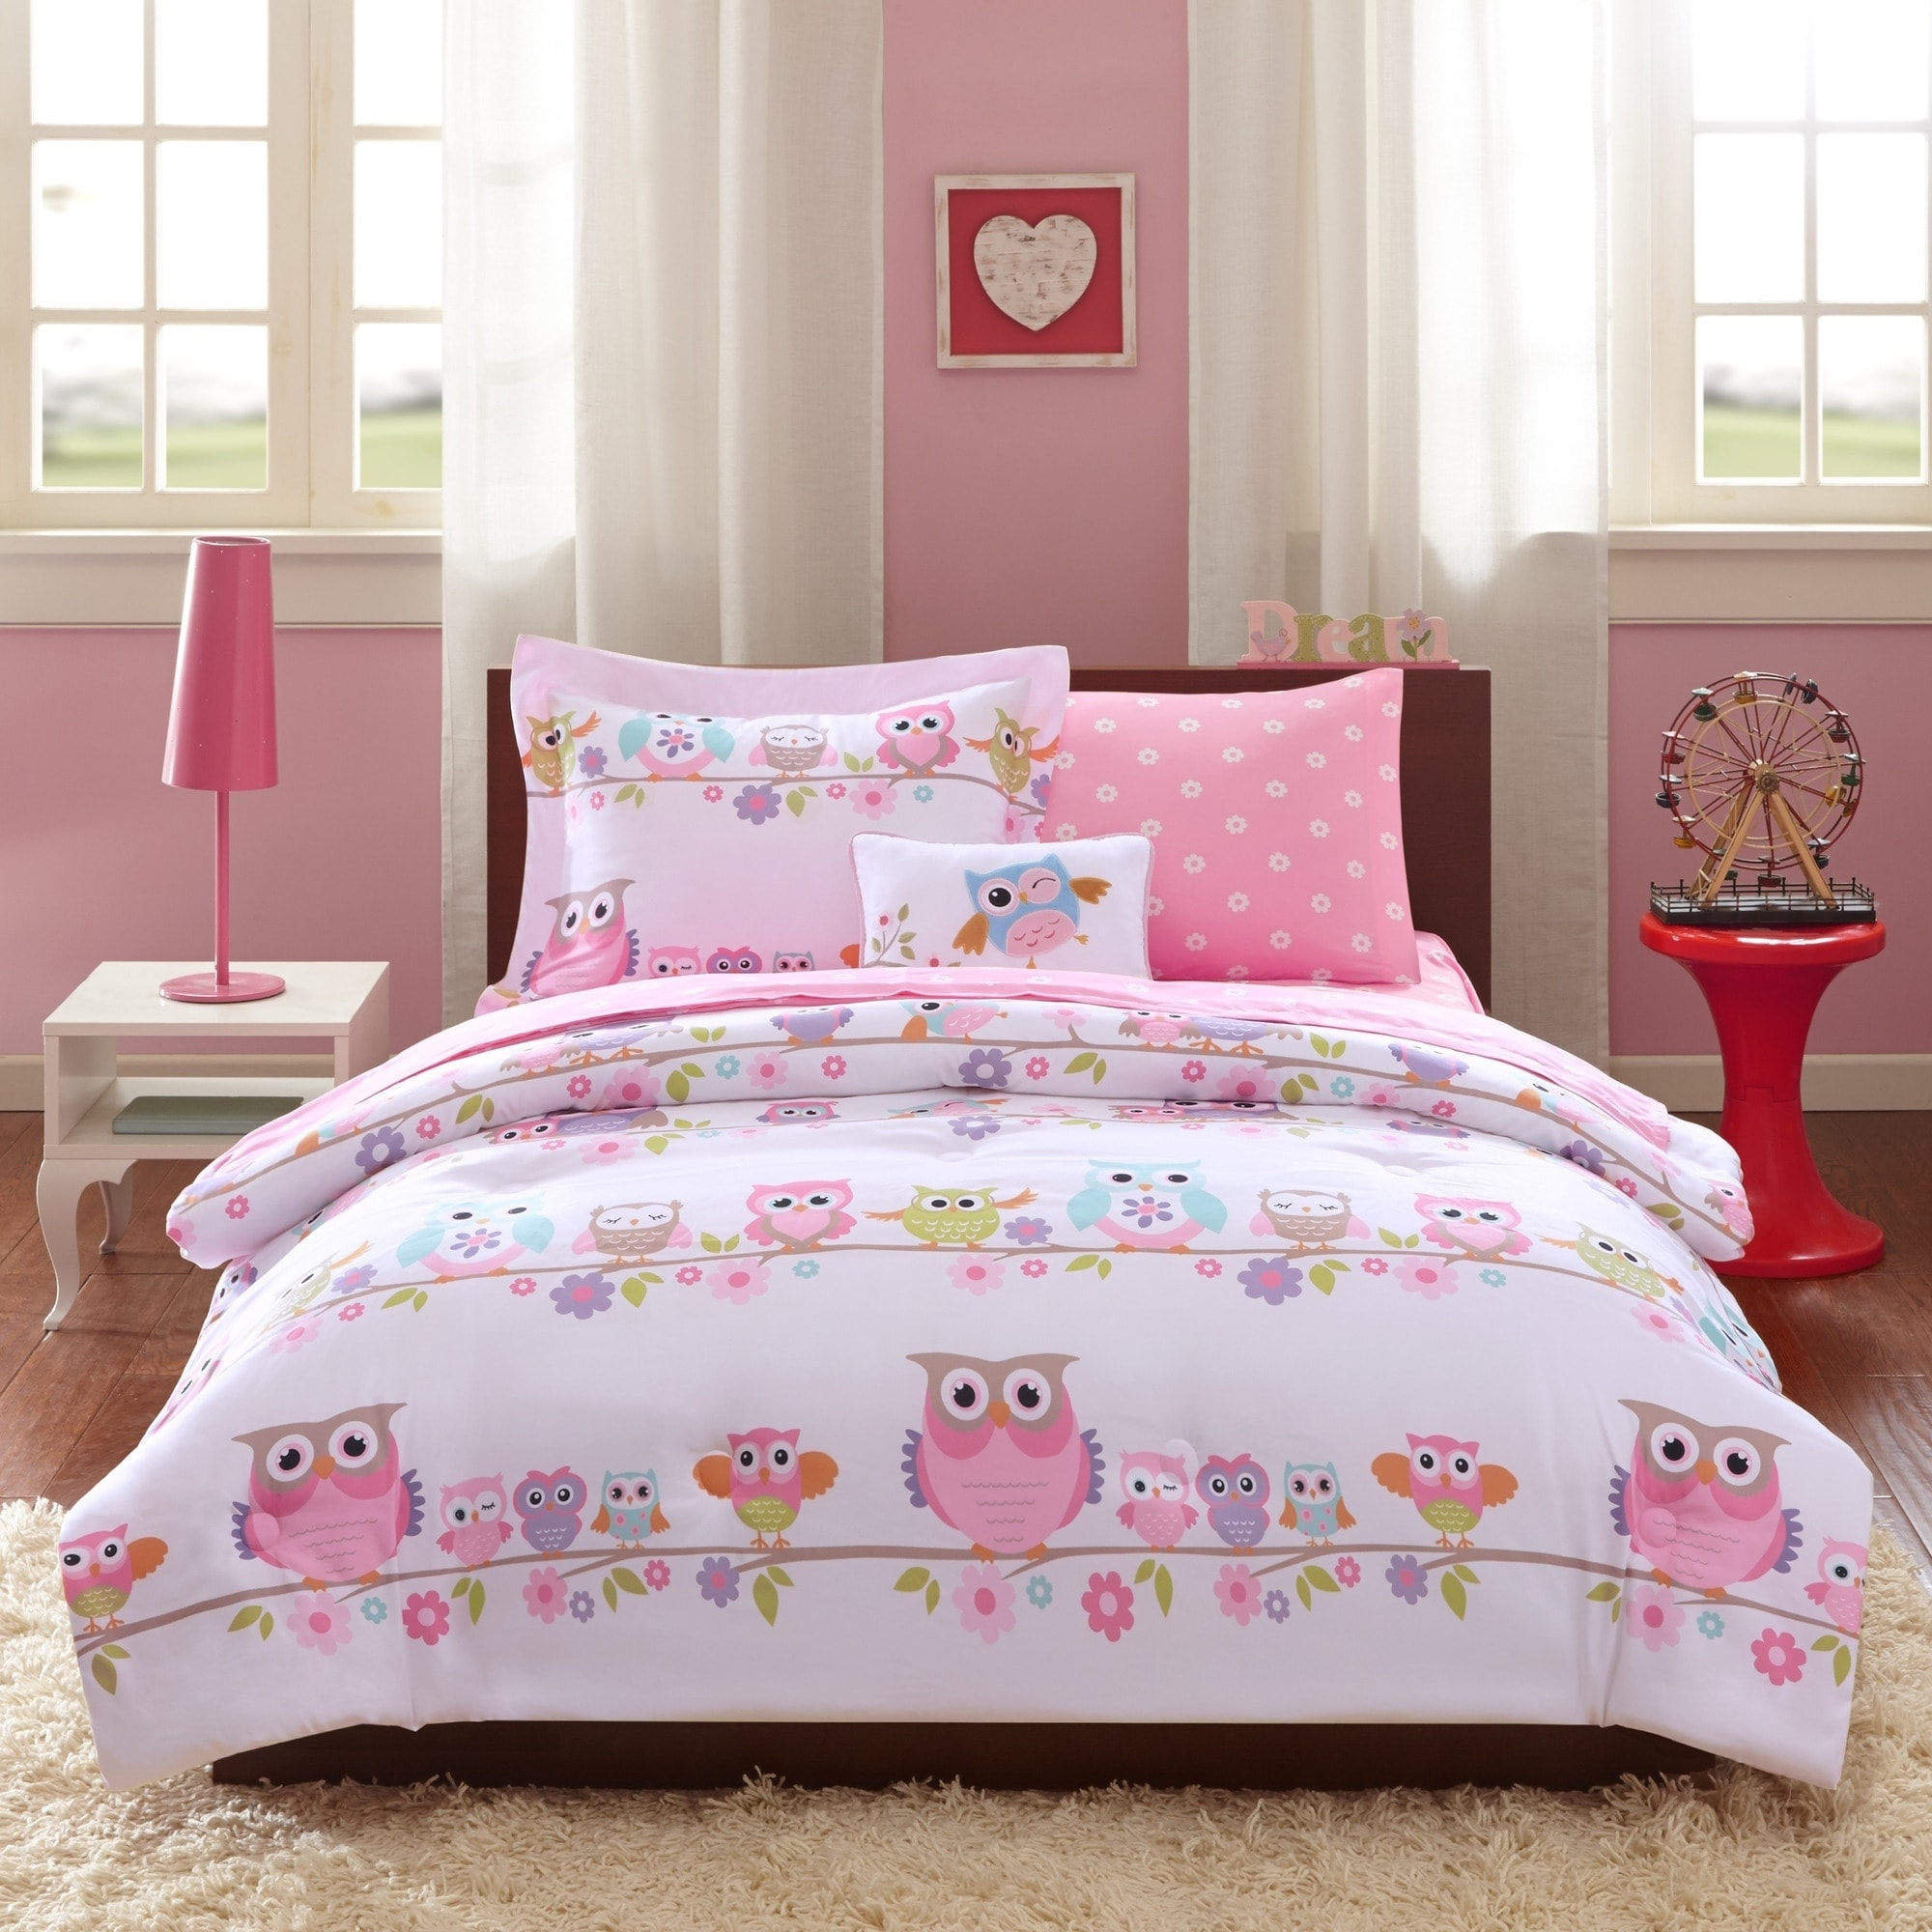 Fitted Sheet Included Cliab Owl Bedding Little Girls Twin Size Kids Bed Sheets Duvet Cover Set 5 Pieces